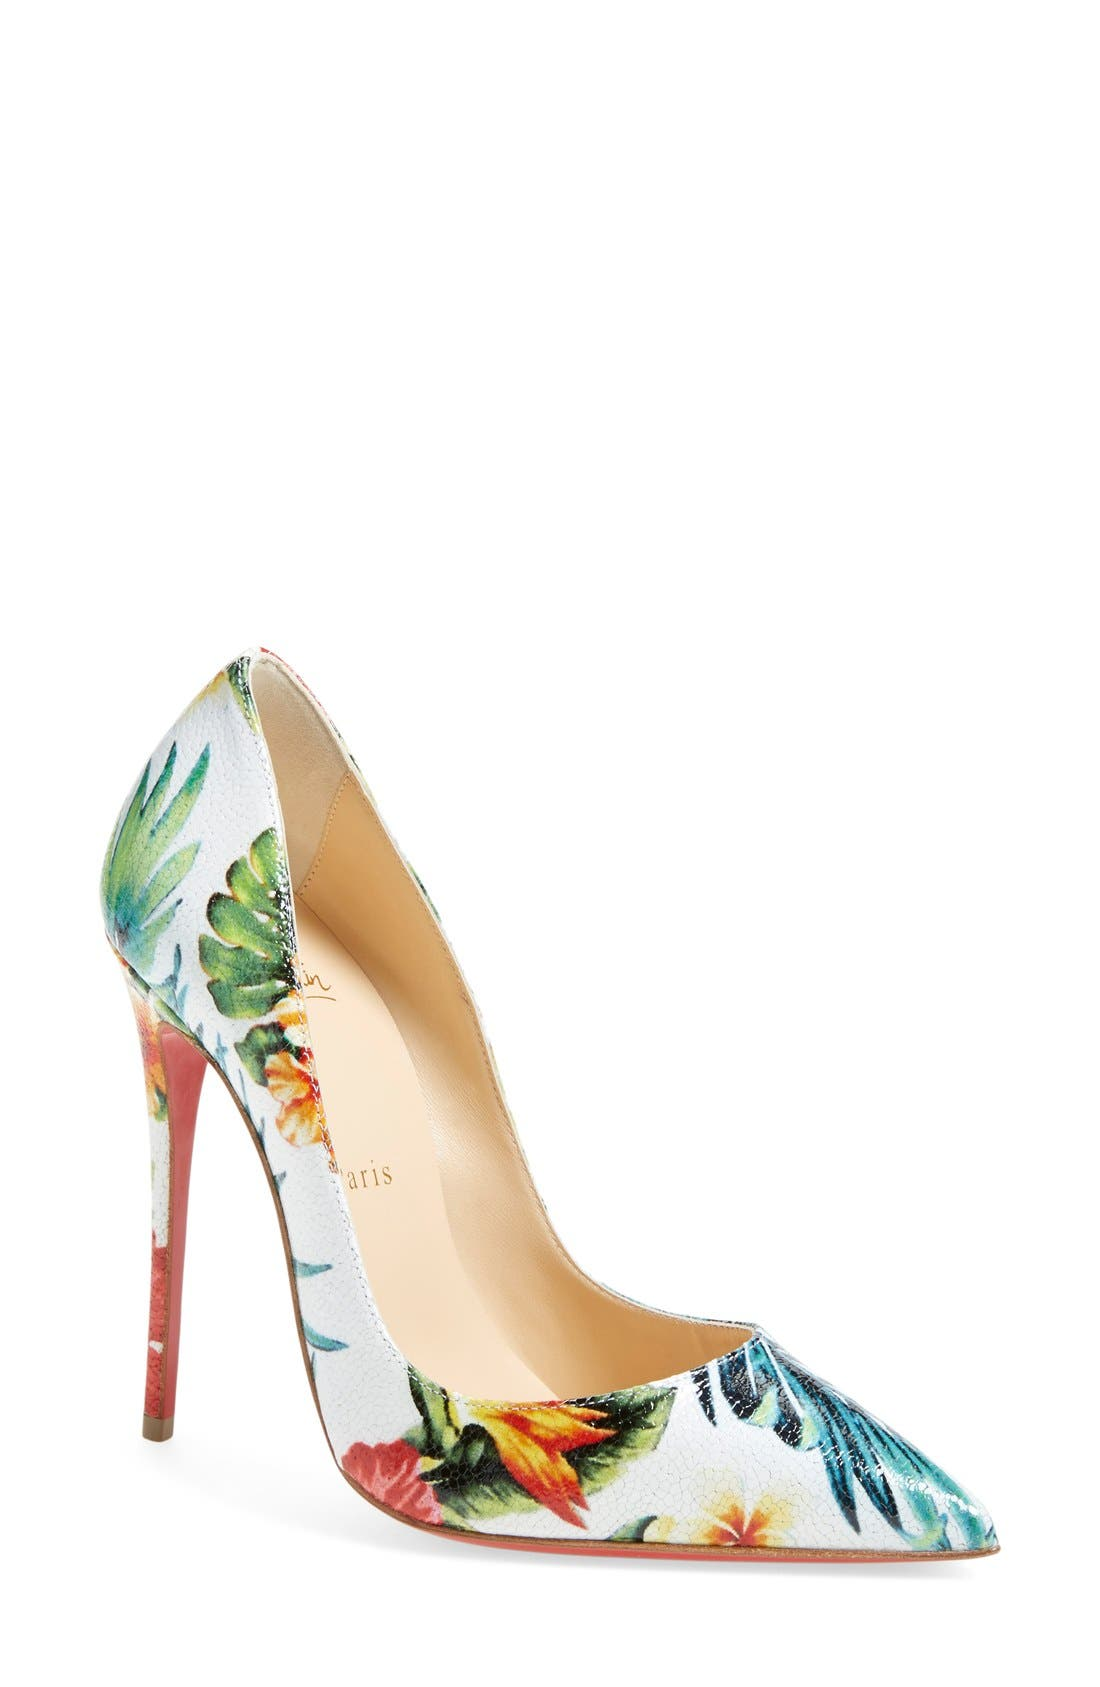 Alternate Image 1 Selected - Christian Louboutin 'So Kate - Hawaii' Print Pointy Toe Pump (Women)